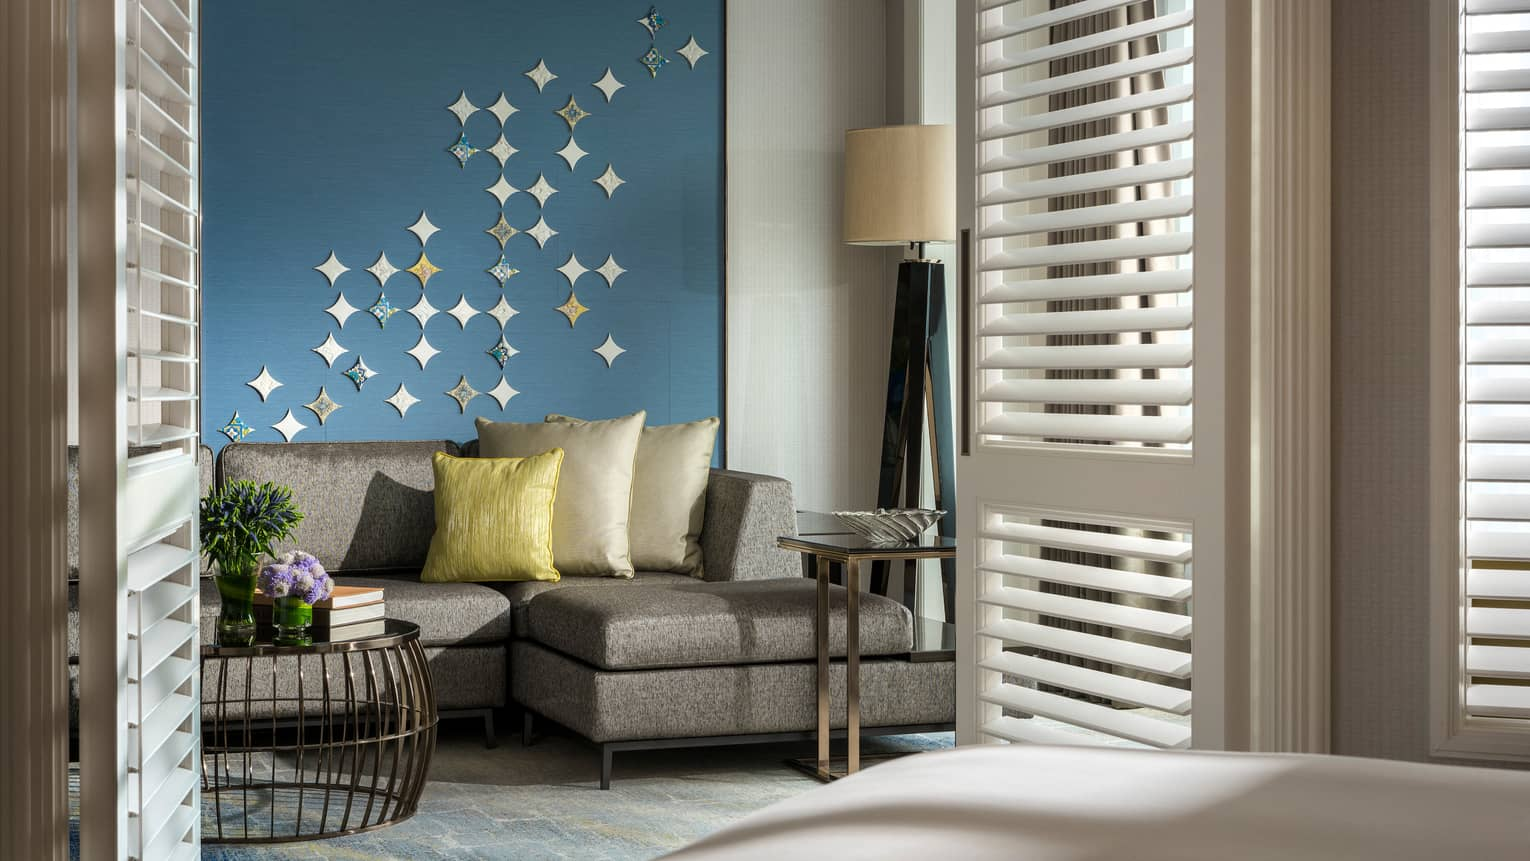 Gold pillows on grey sofa against blue wall with star-shaped Peranakan tile mural